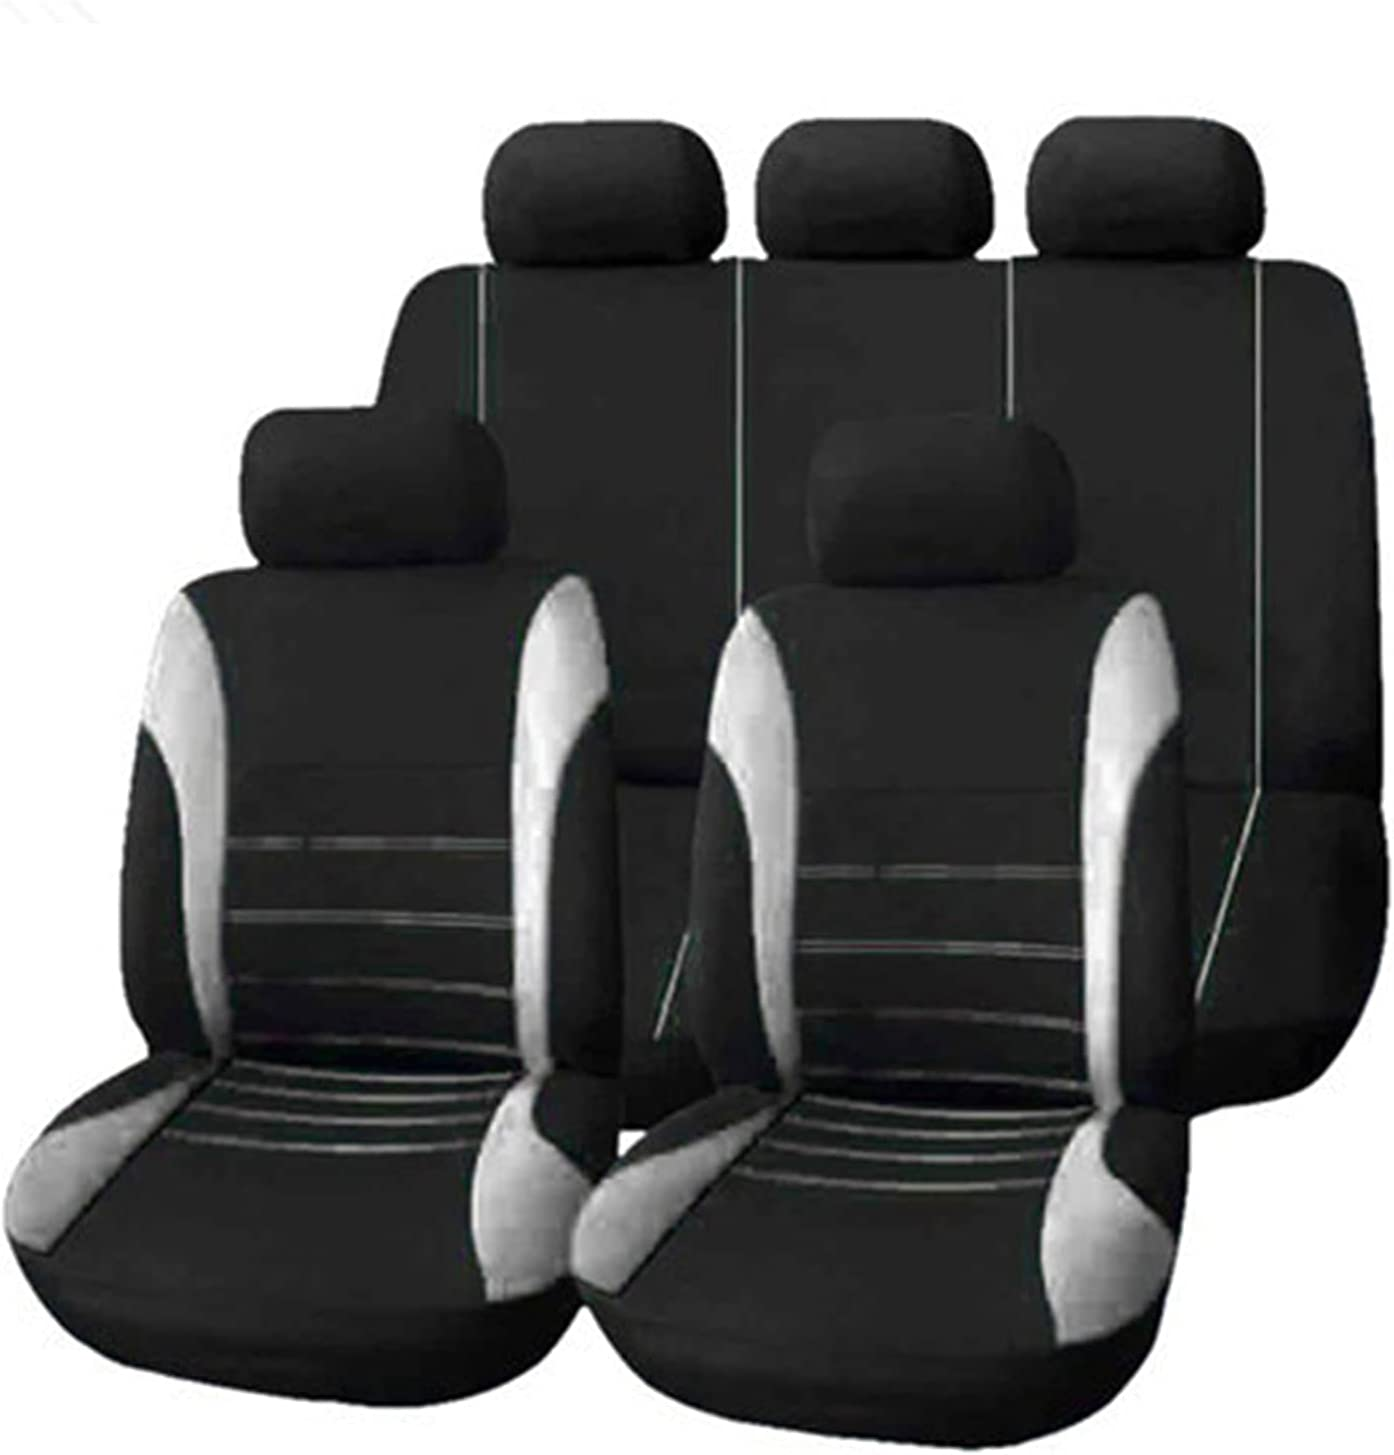 Carrfan 9 Pcs Car Seat Cover 2021 spring and summer new Sea Vehicle Max 69% OFF Protective Four Cushion